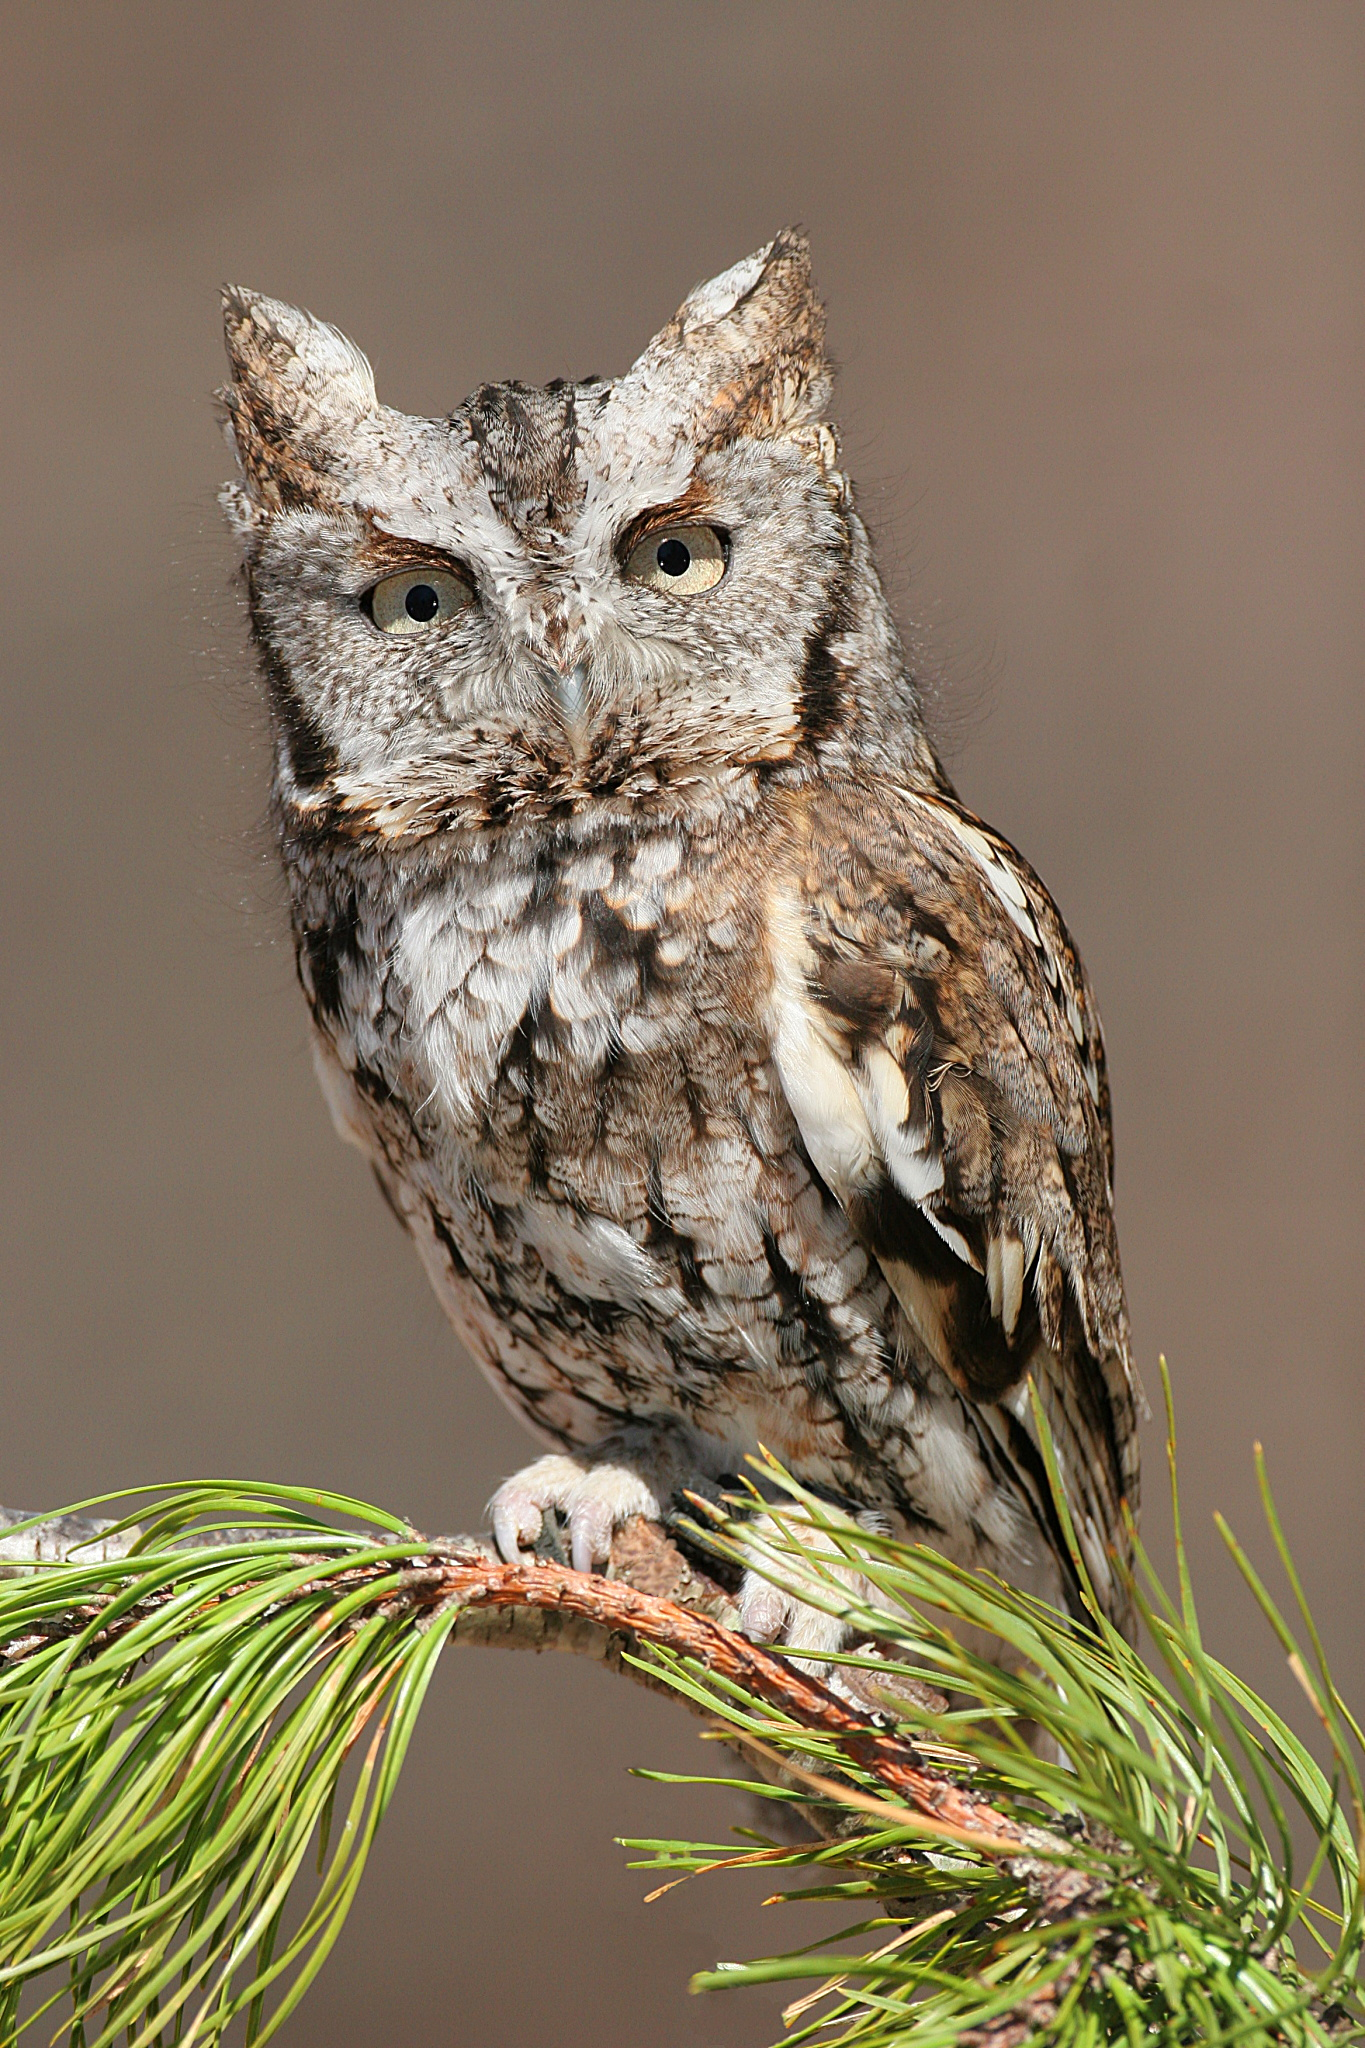 Eastern Screech Owl wallpaper